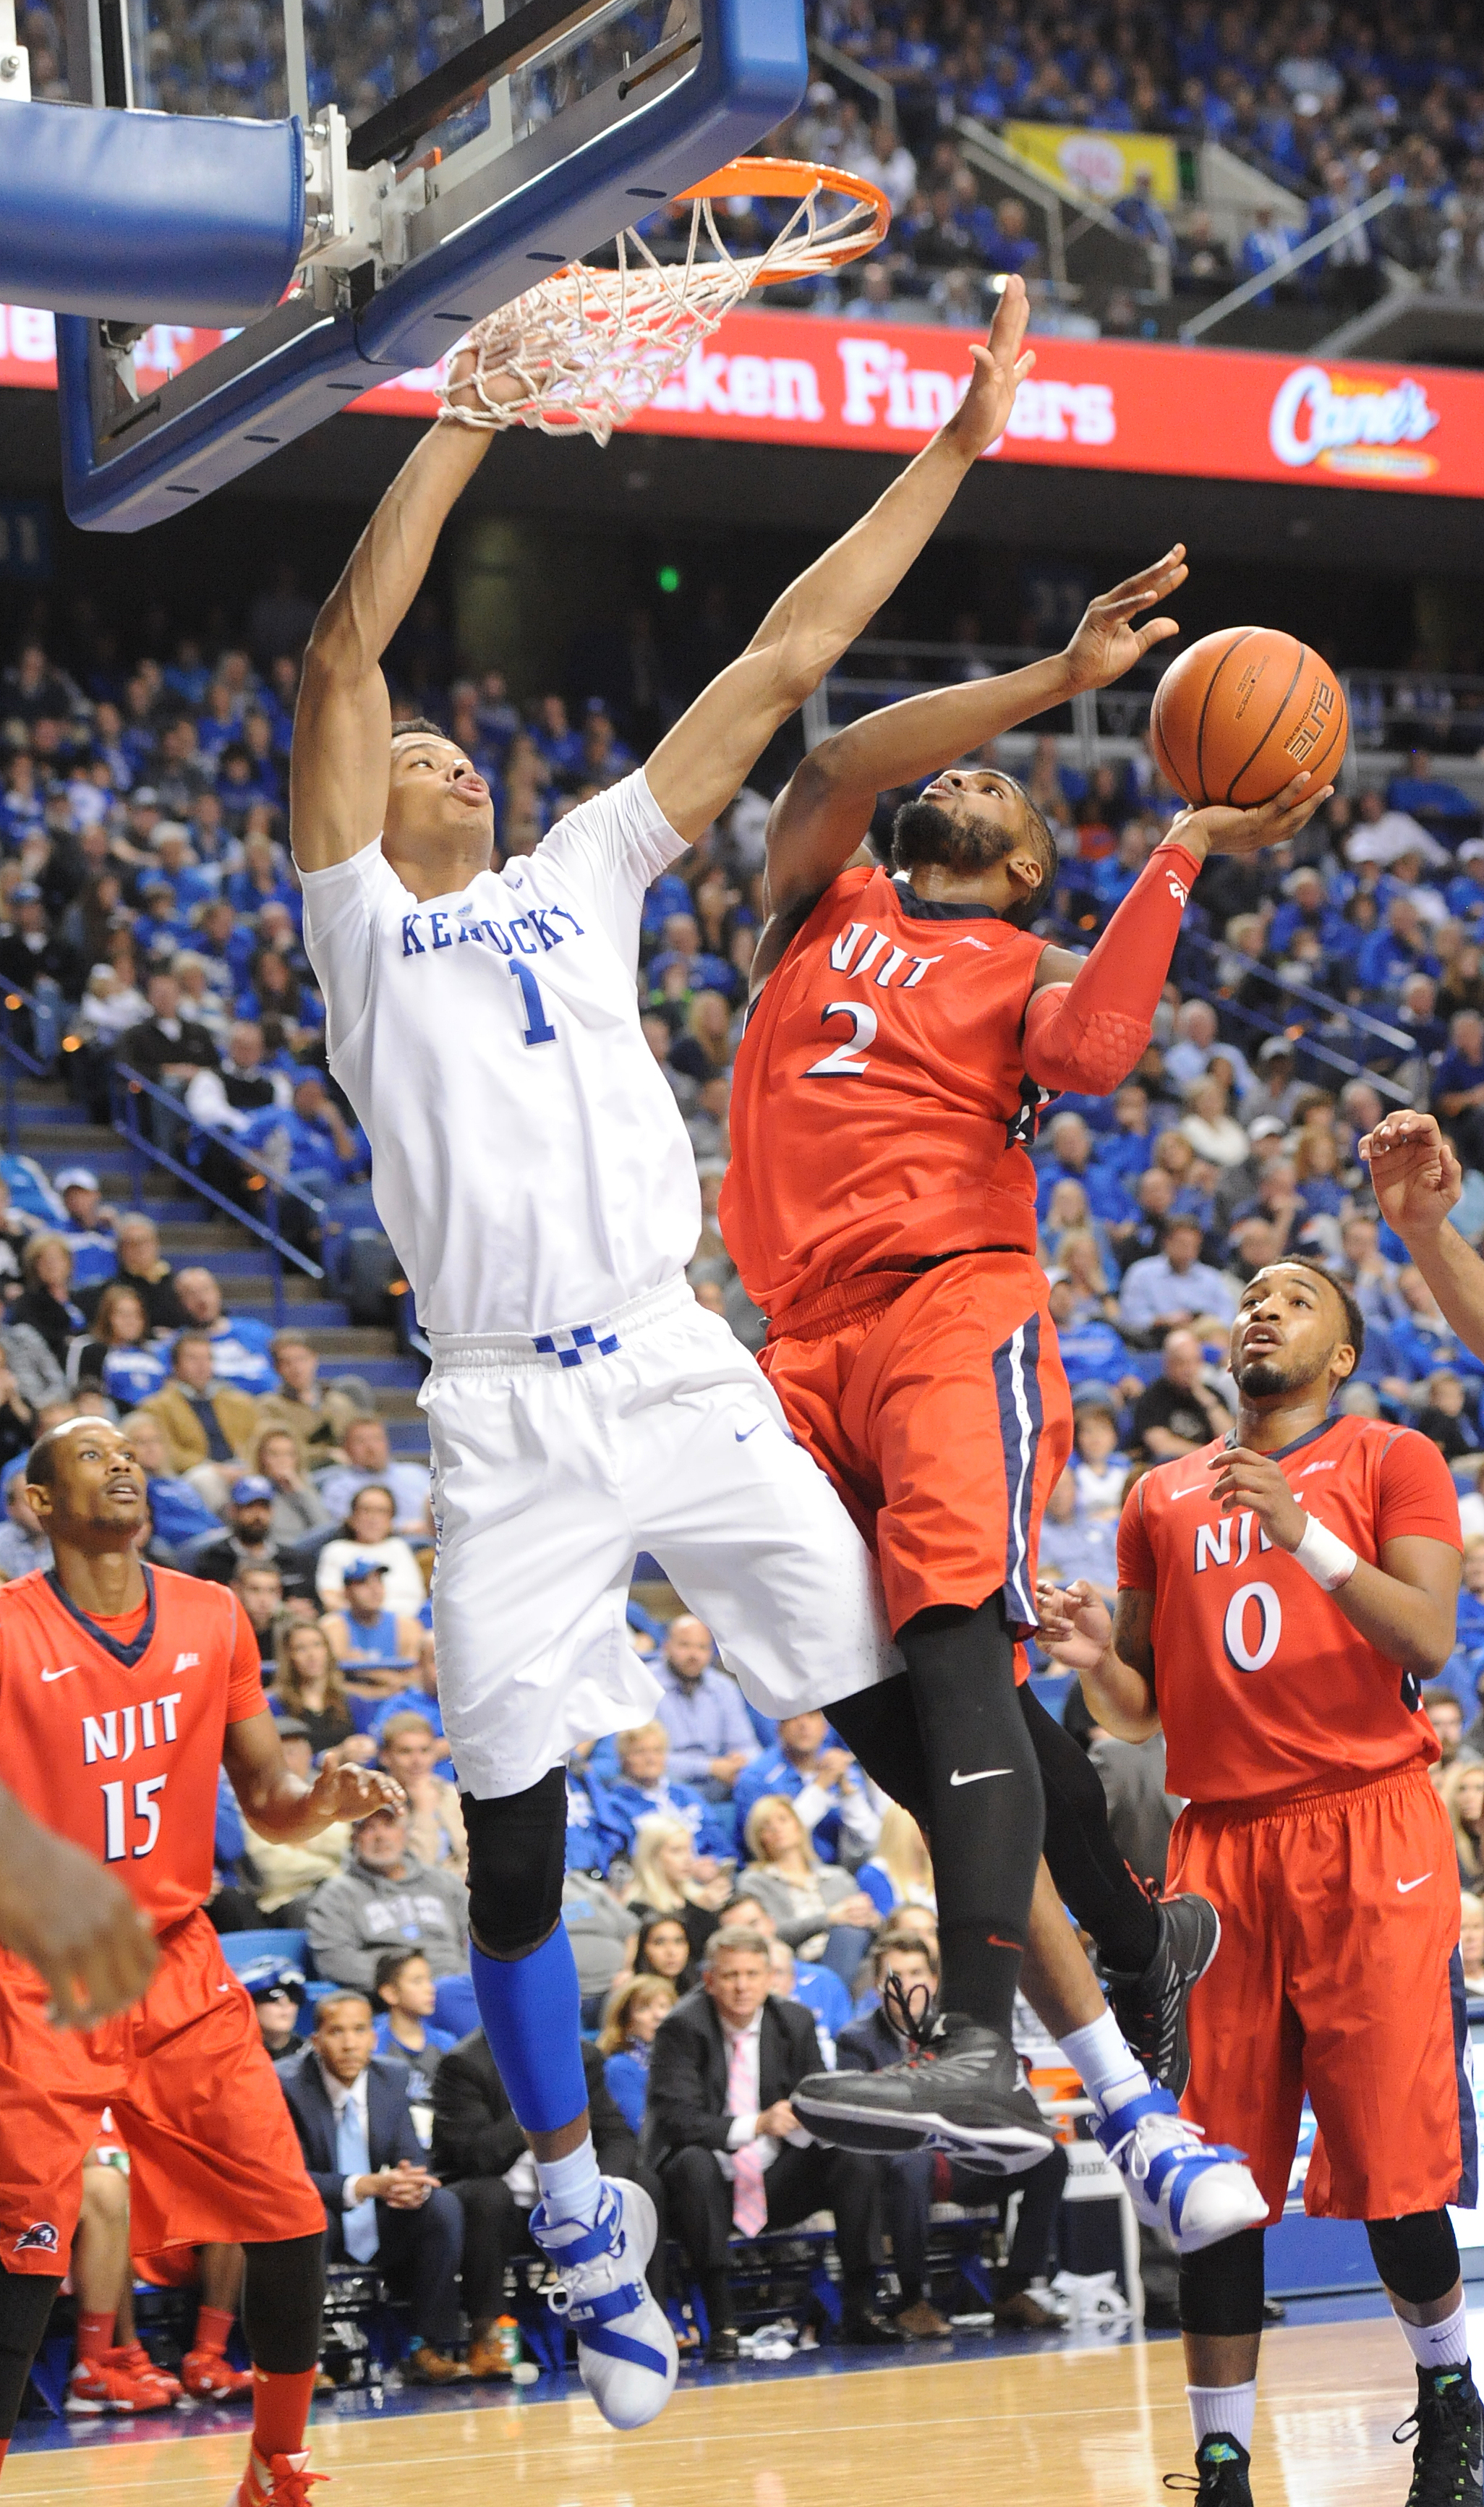 Freshman Skal Labissiere exploded offensively with a 10-for-12 performance from the field and a perfect 6-of-6 day from the charity stripe for a 26-point performance against the NJIT. He scored 18 points before halftime, the second most in a first half in the John Calipari era Bill Thiry Photo)